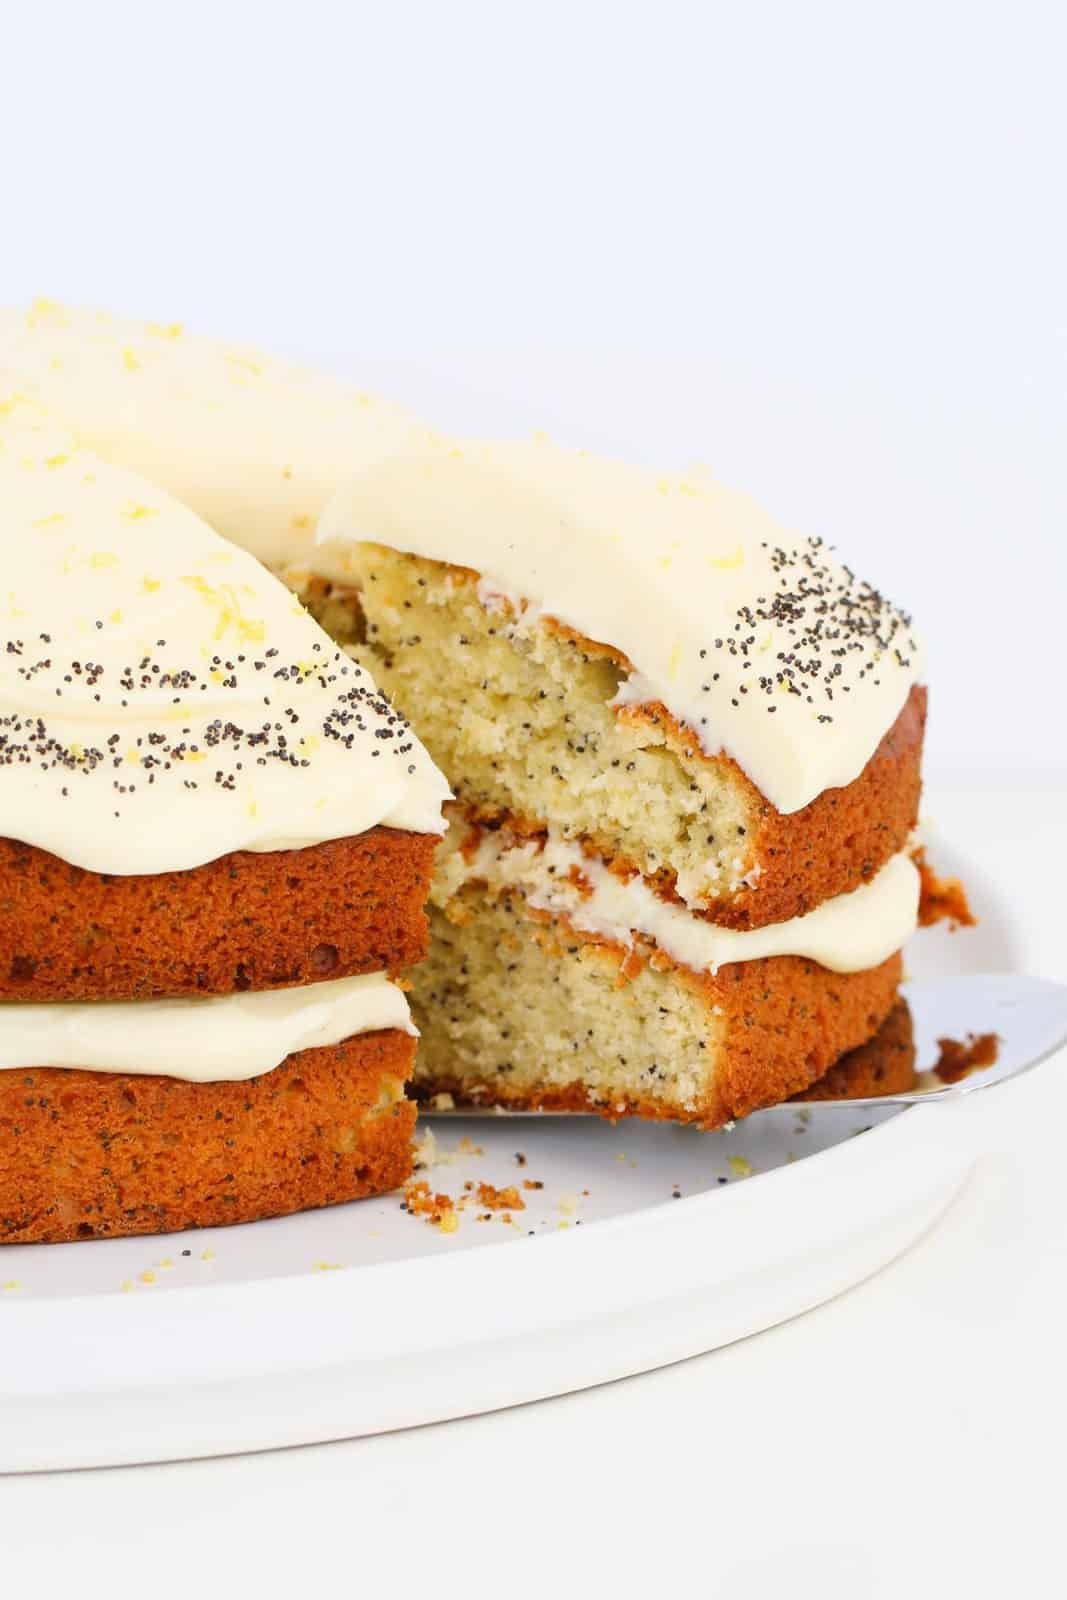 A slice of poppy seed cake with cream cheese frosting being removed from the rest of the cake.